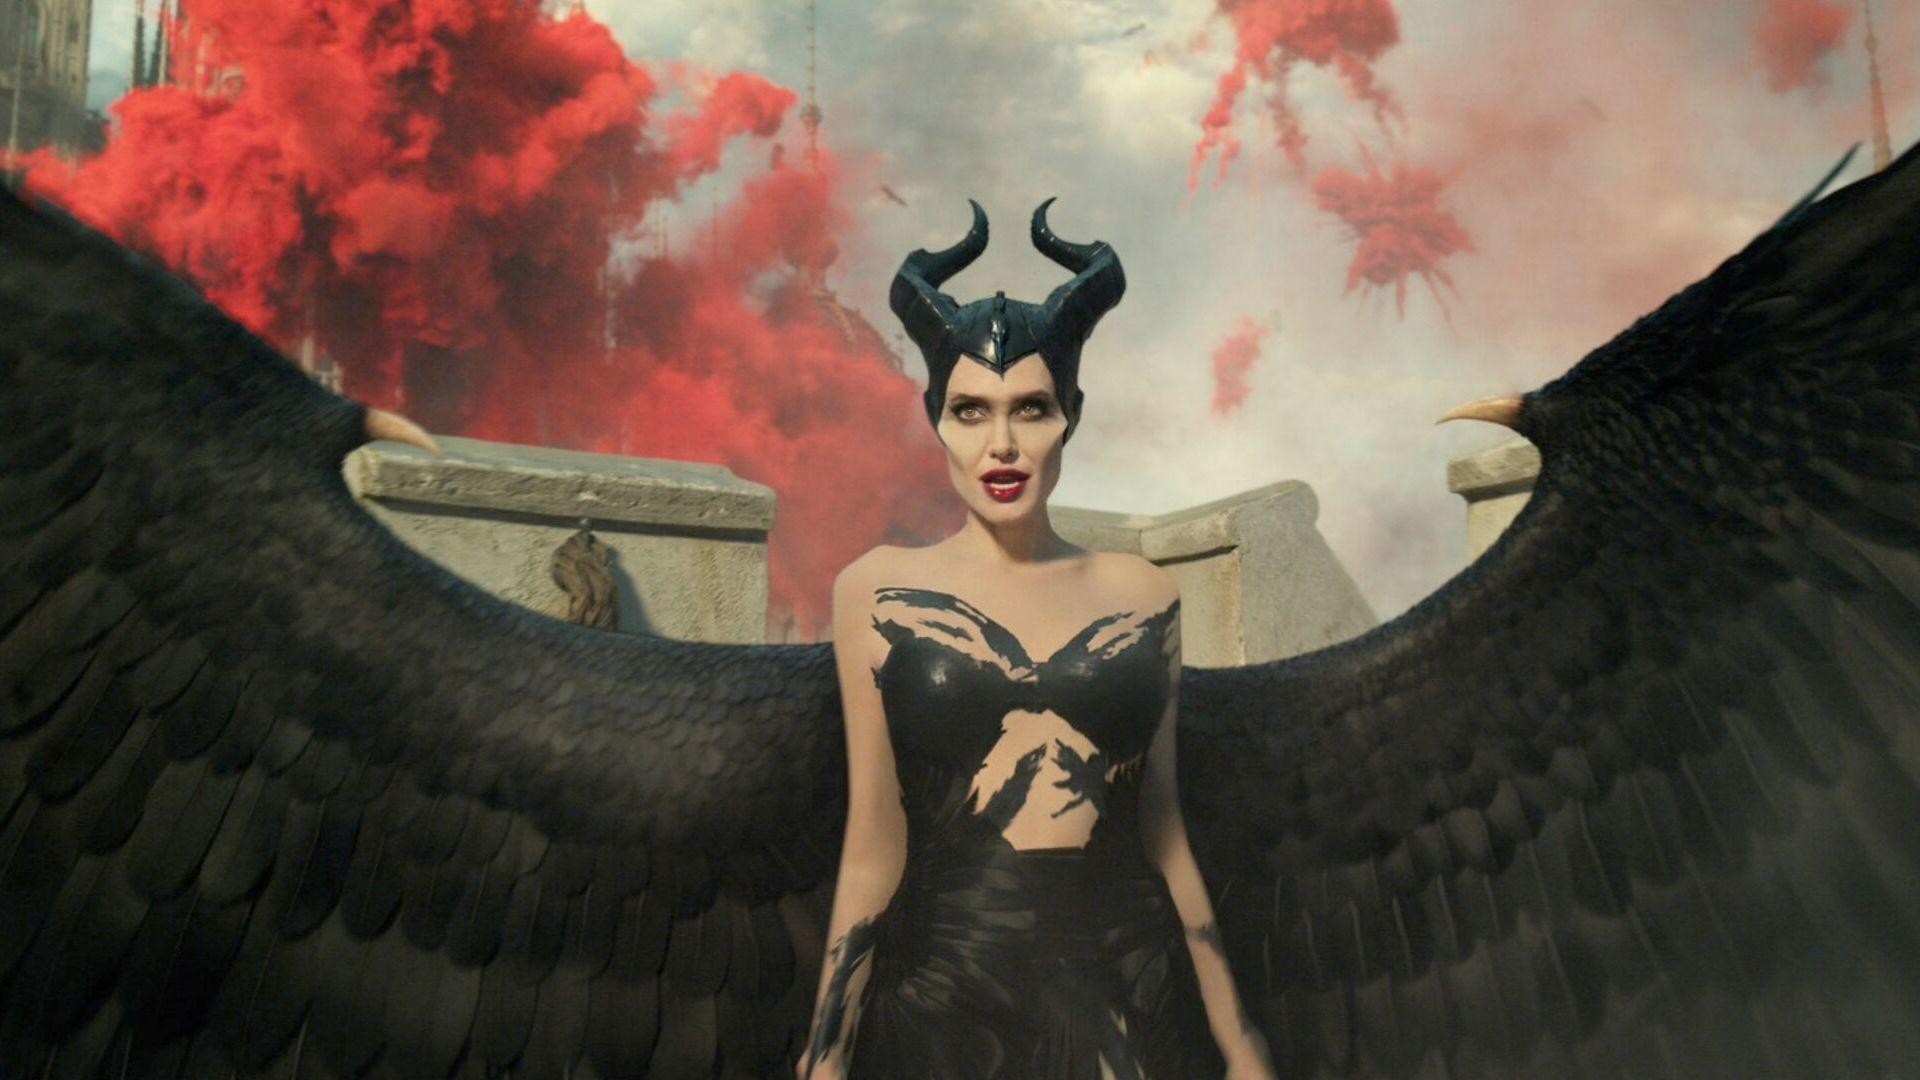 4 Things You Need To Know About The Costumes In The New Maleficent Movie